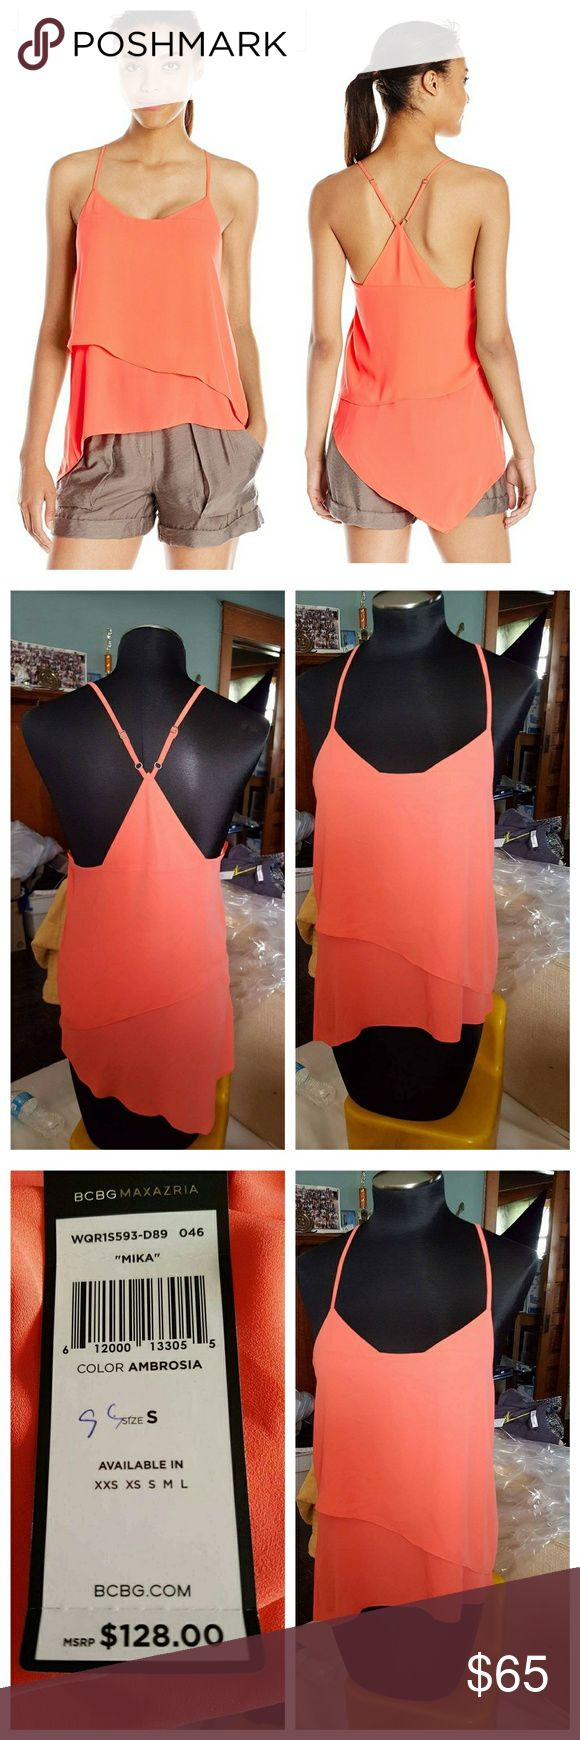 🎉New Bcbg Maxazria Mika Relaxed Tank Embrace the warmth of the season in a relaxed tank with high-contrast color blocking, adjustable crisscross straps and asymmetrical hemline.  100% Polyester Machine Wash PulloverV-neck, sleeveless with adjustable straps. Open back with multi-strap detail Asymmetrical hemline   NEW WITH TAGS  Size Small  COLOR Ambrosia BCBGMaxAzria Tops Tank Tops